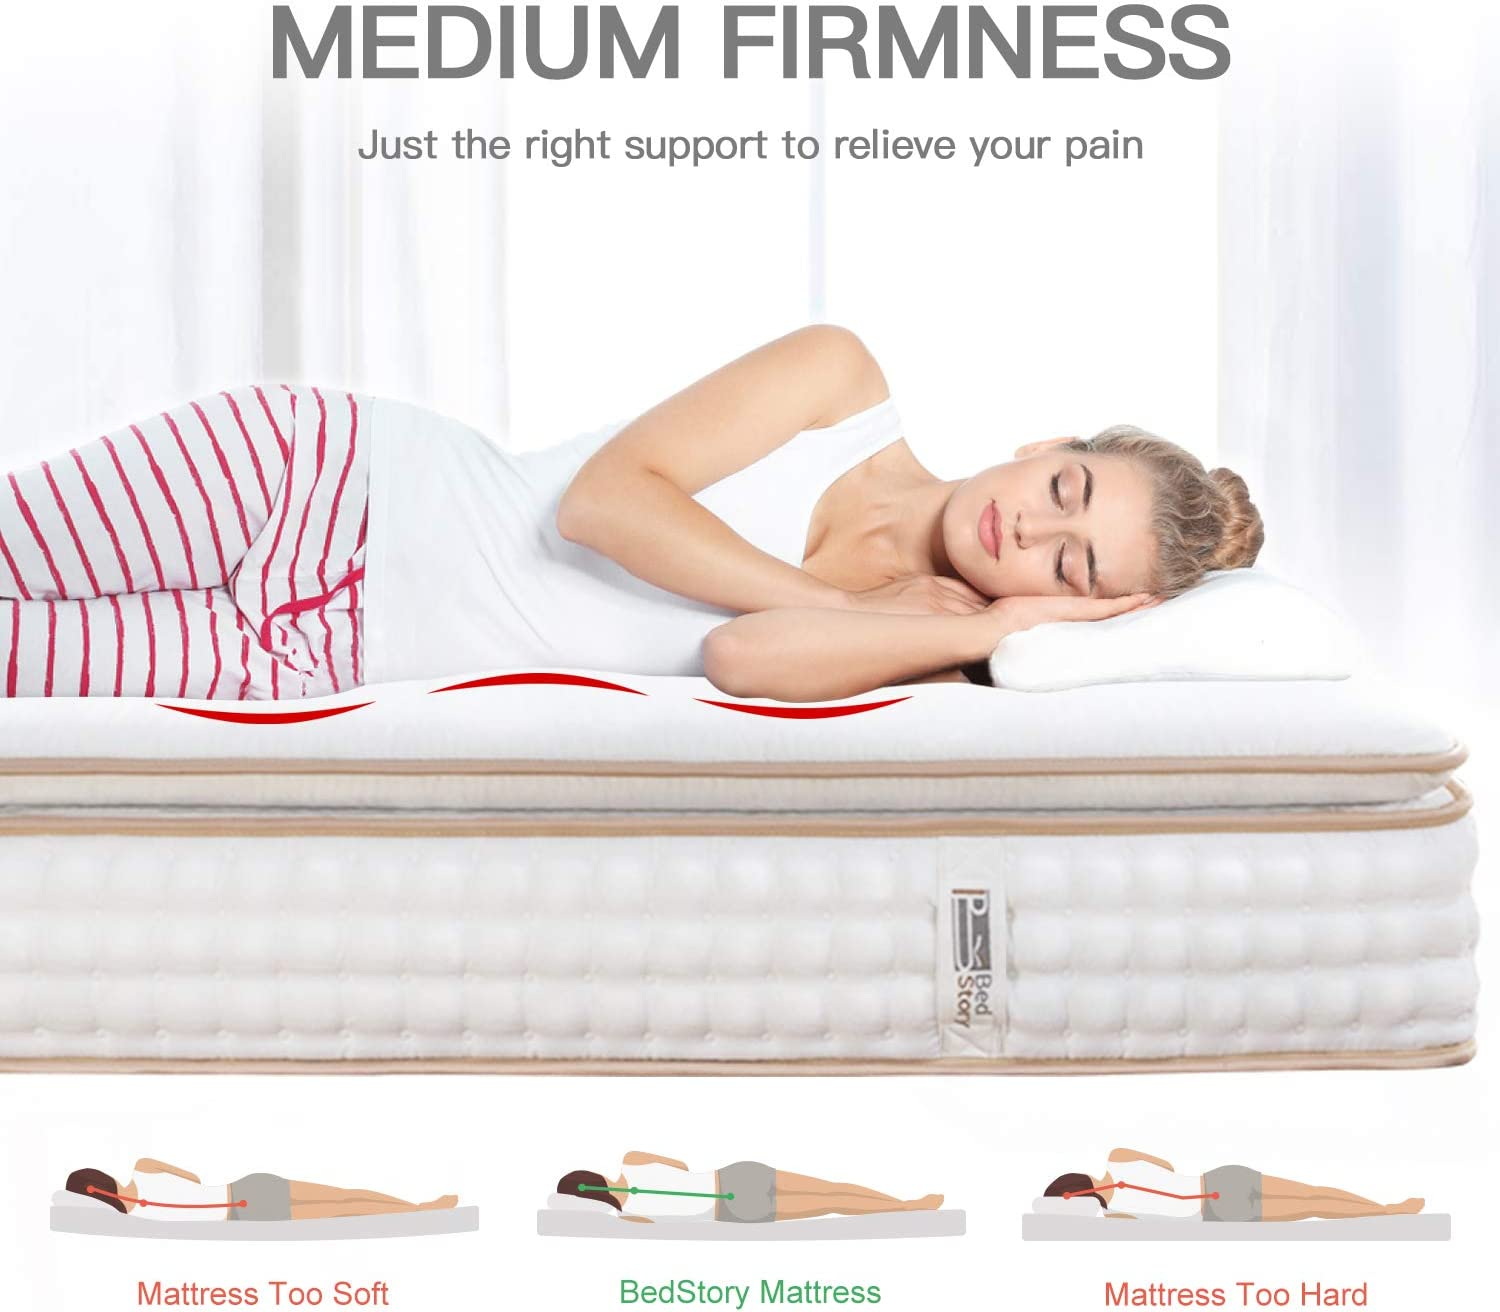 Medium Firm Support CertiPUR-US Certified Pillow Top Bed Mattress in A Box Luxury Hybrid Mattress with Cooling Gel Memory Foam /& Individually Encased Spring Coils BedStory 12 Inch Twin Mattress